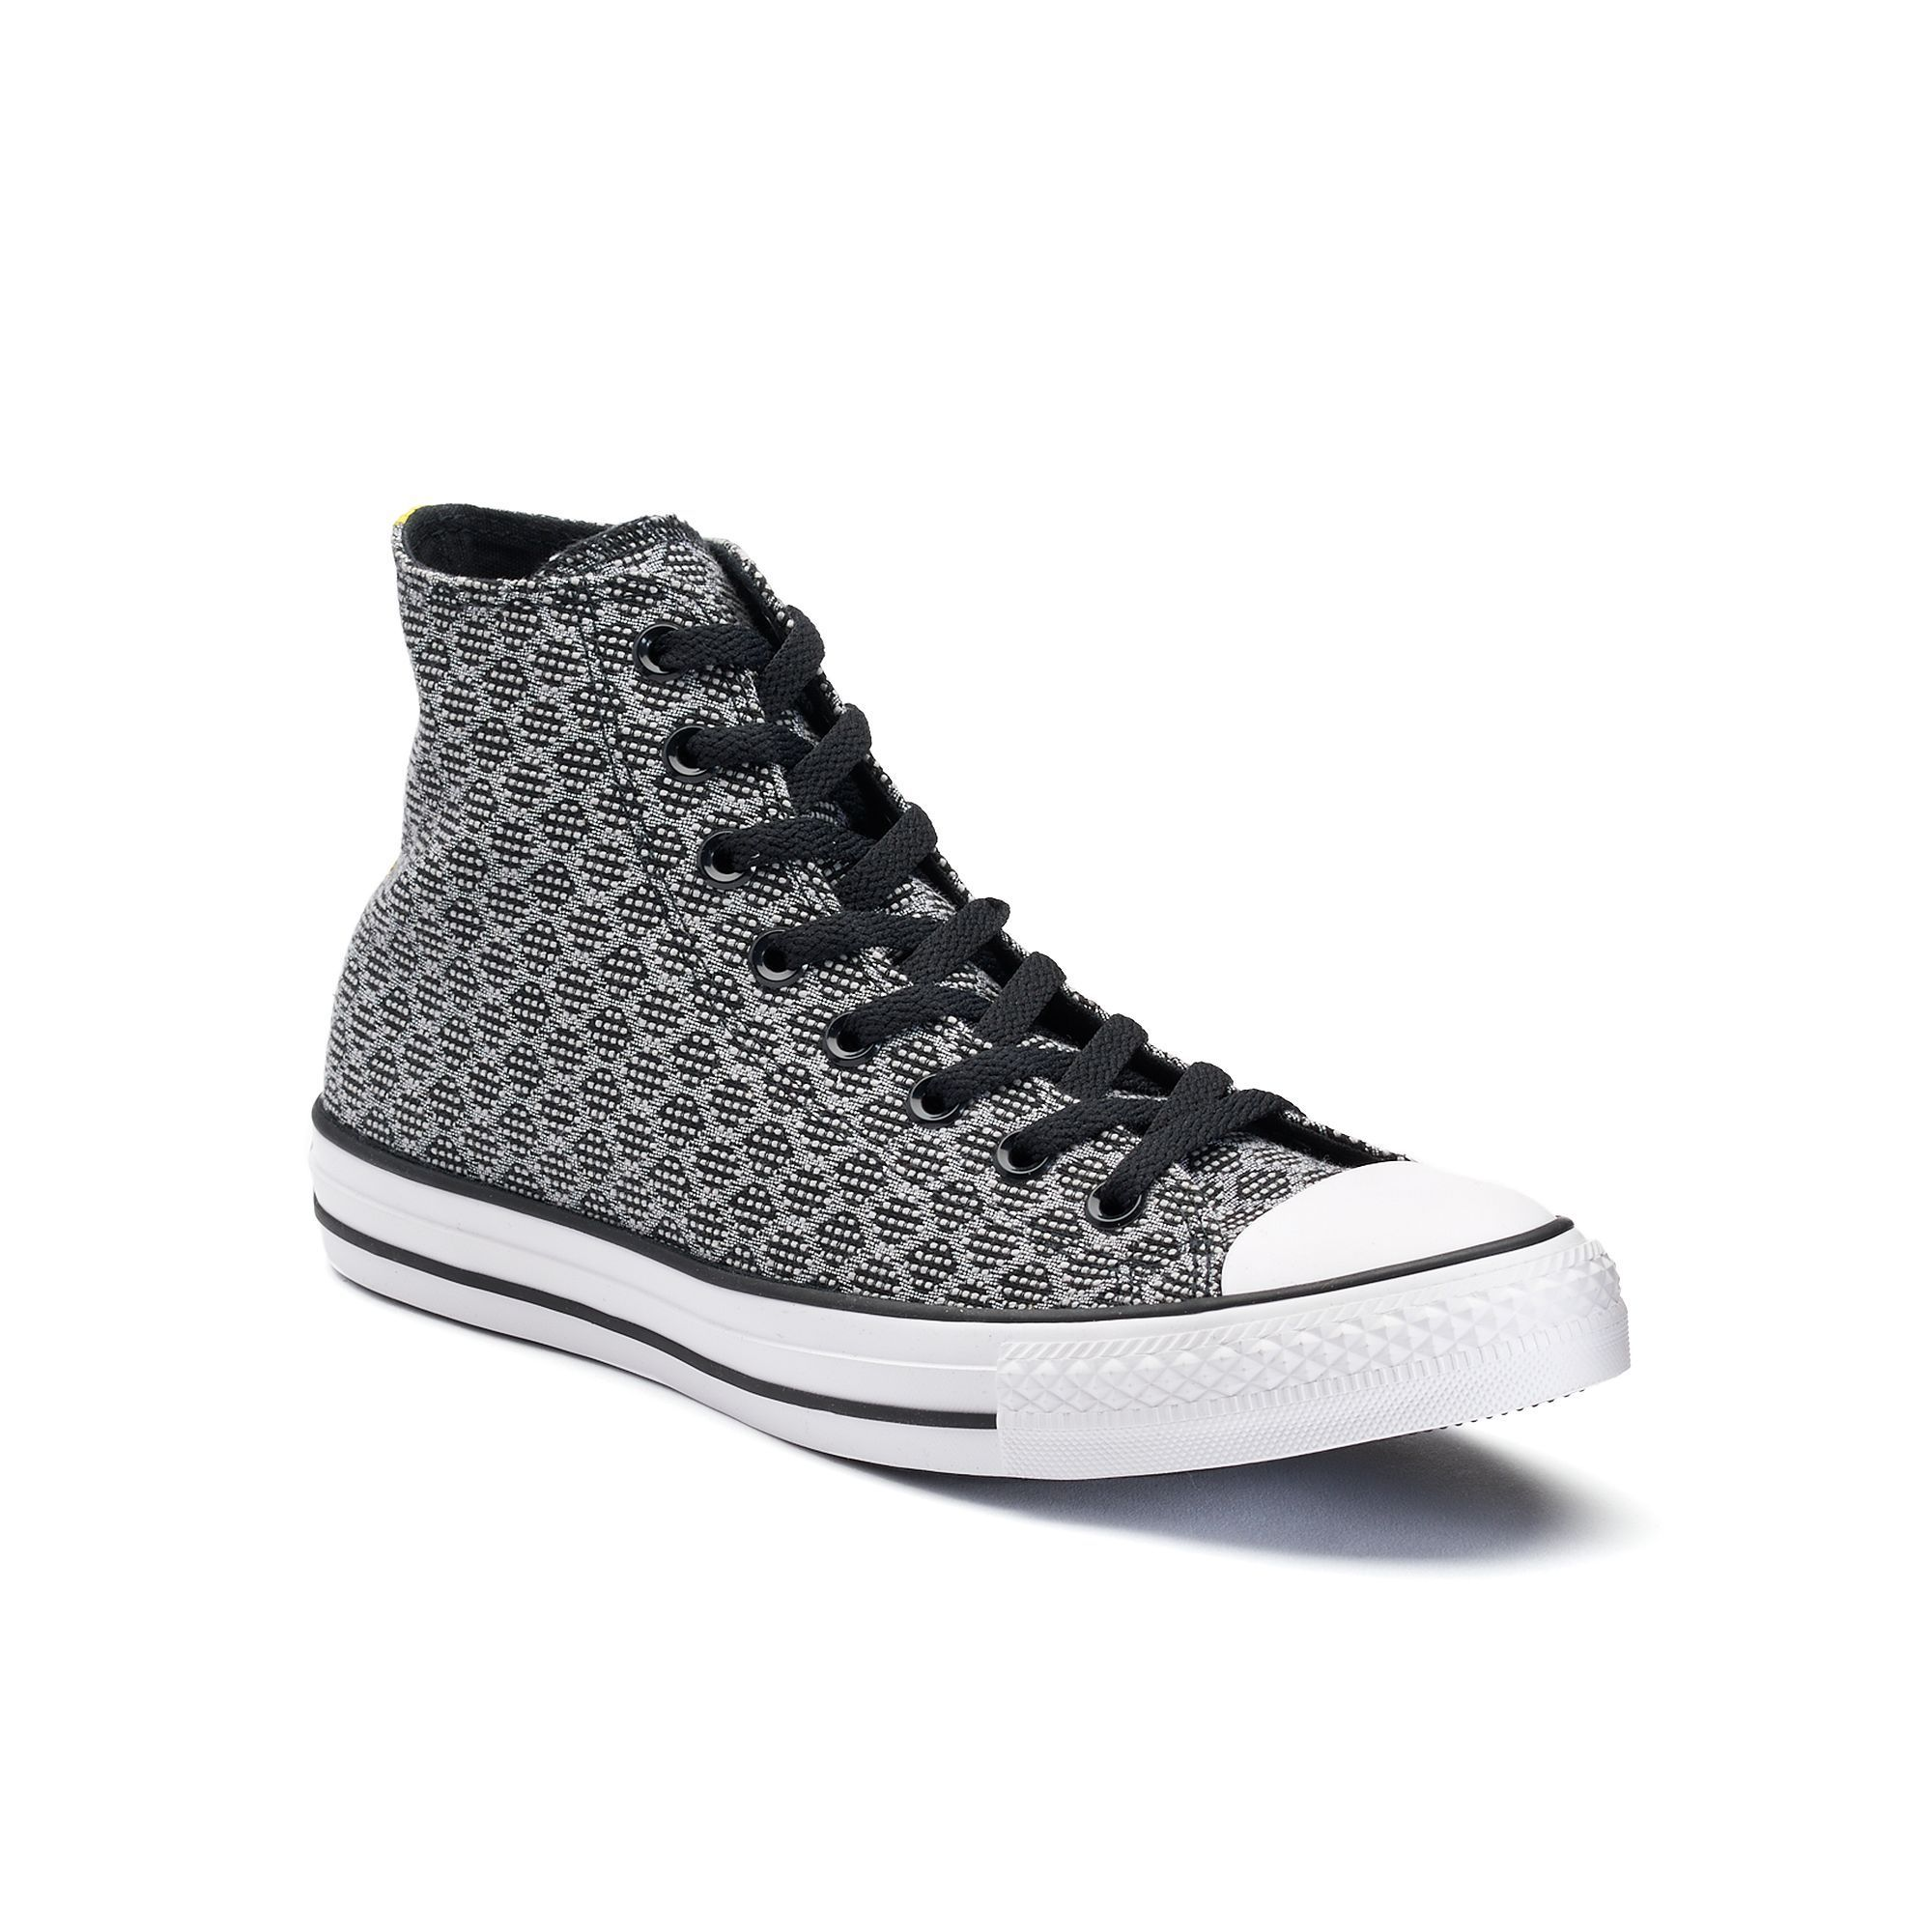 9f0971d58ee8 Men s Converse Chuck Taylor All Star Geometric High Top Sneakers in ...